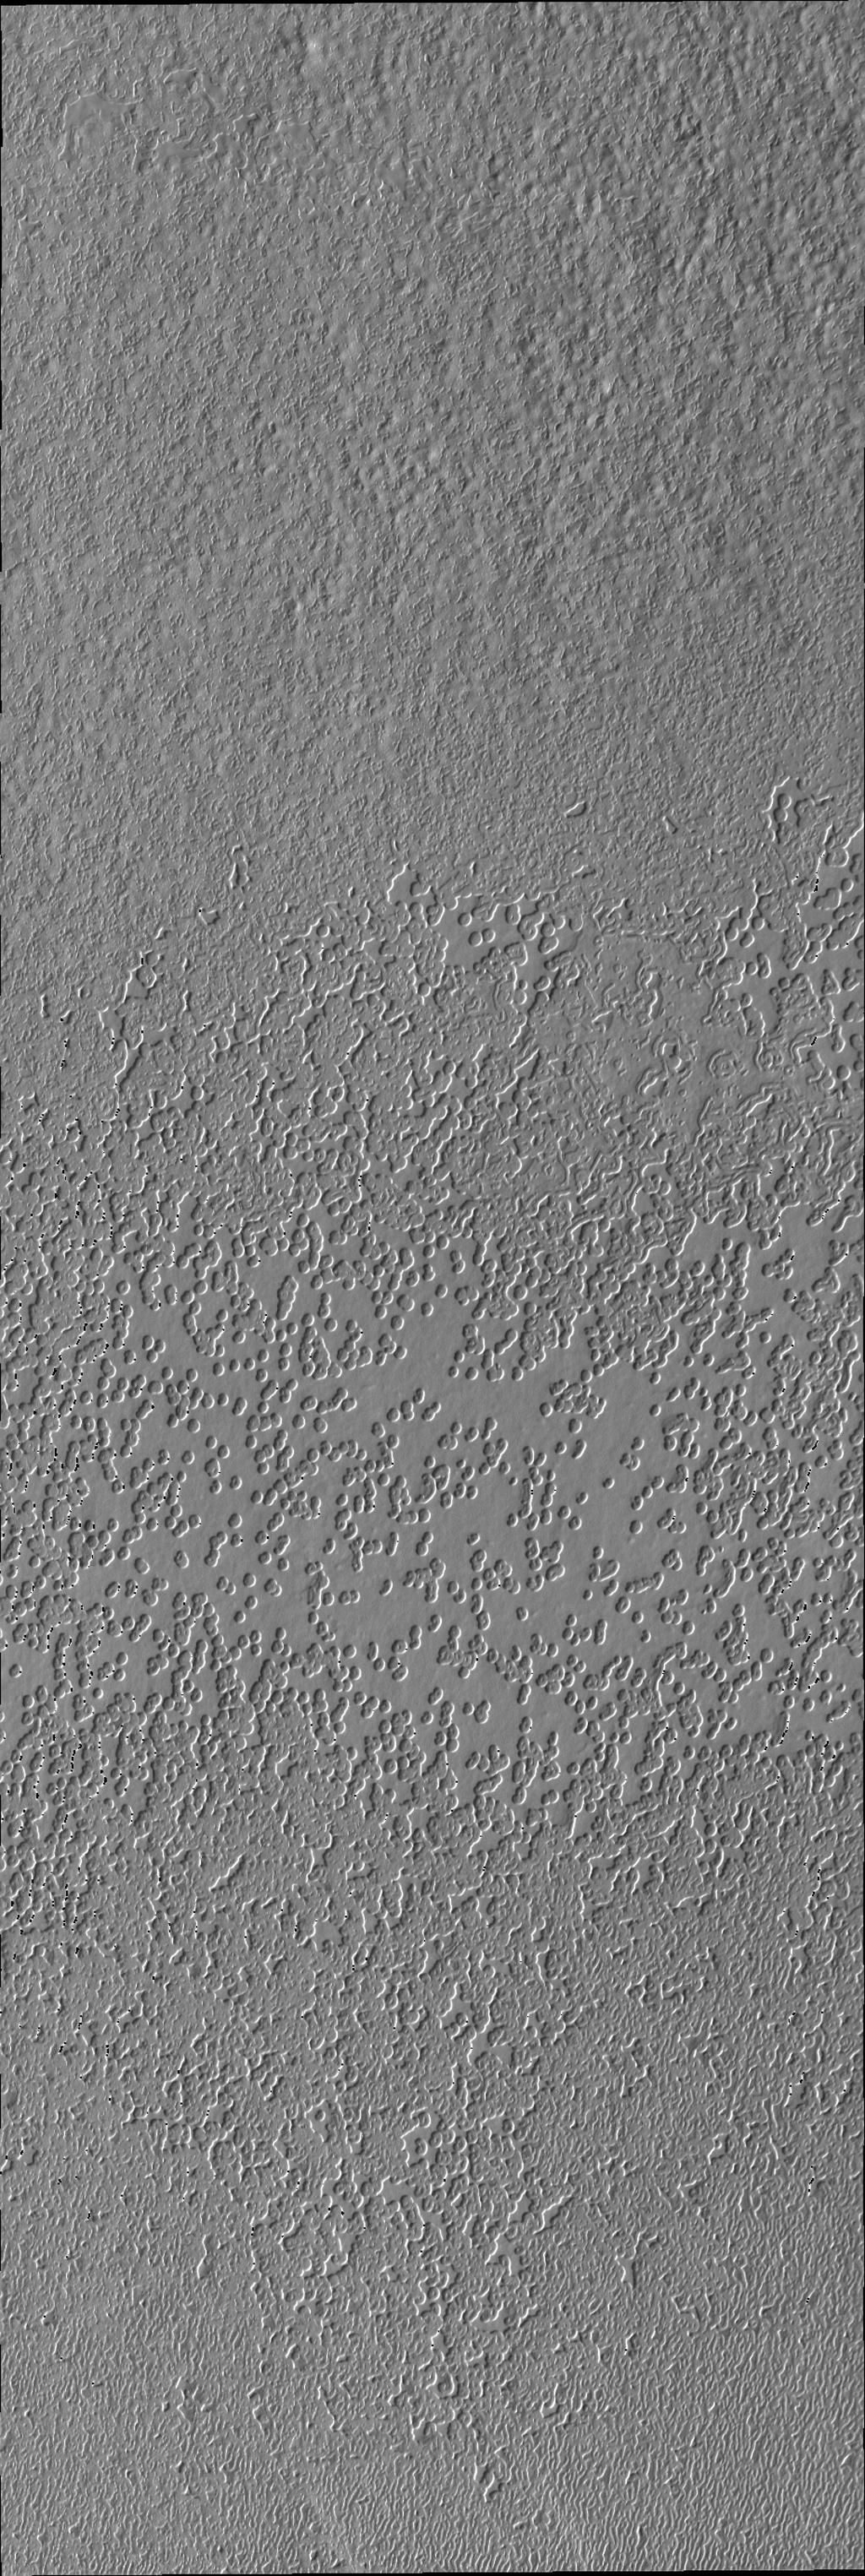 The pitted appearance of the south polar cap ice in this image from NASA's Mars Odyssey is similar to the appearance of a slice of swiss cheese.